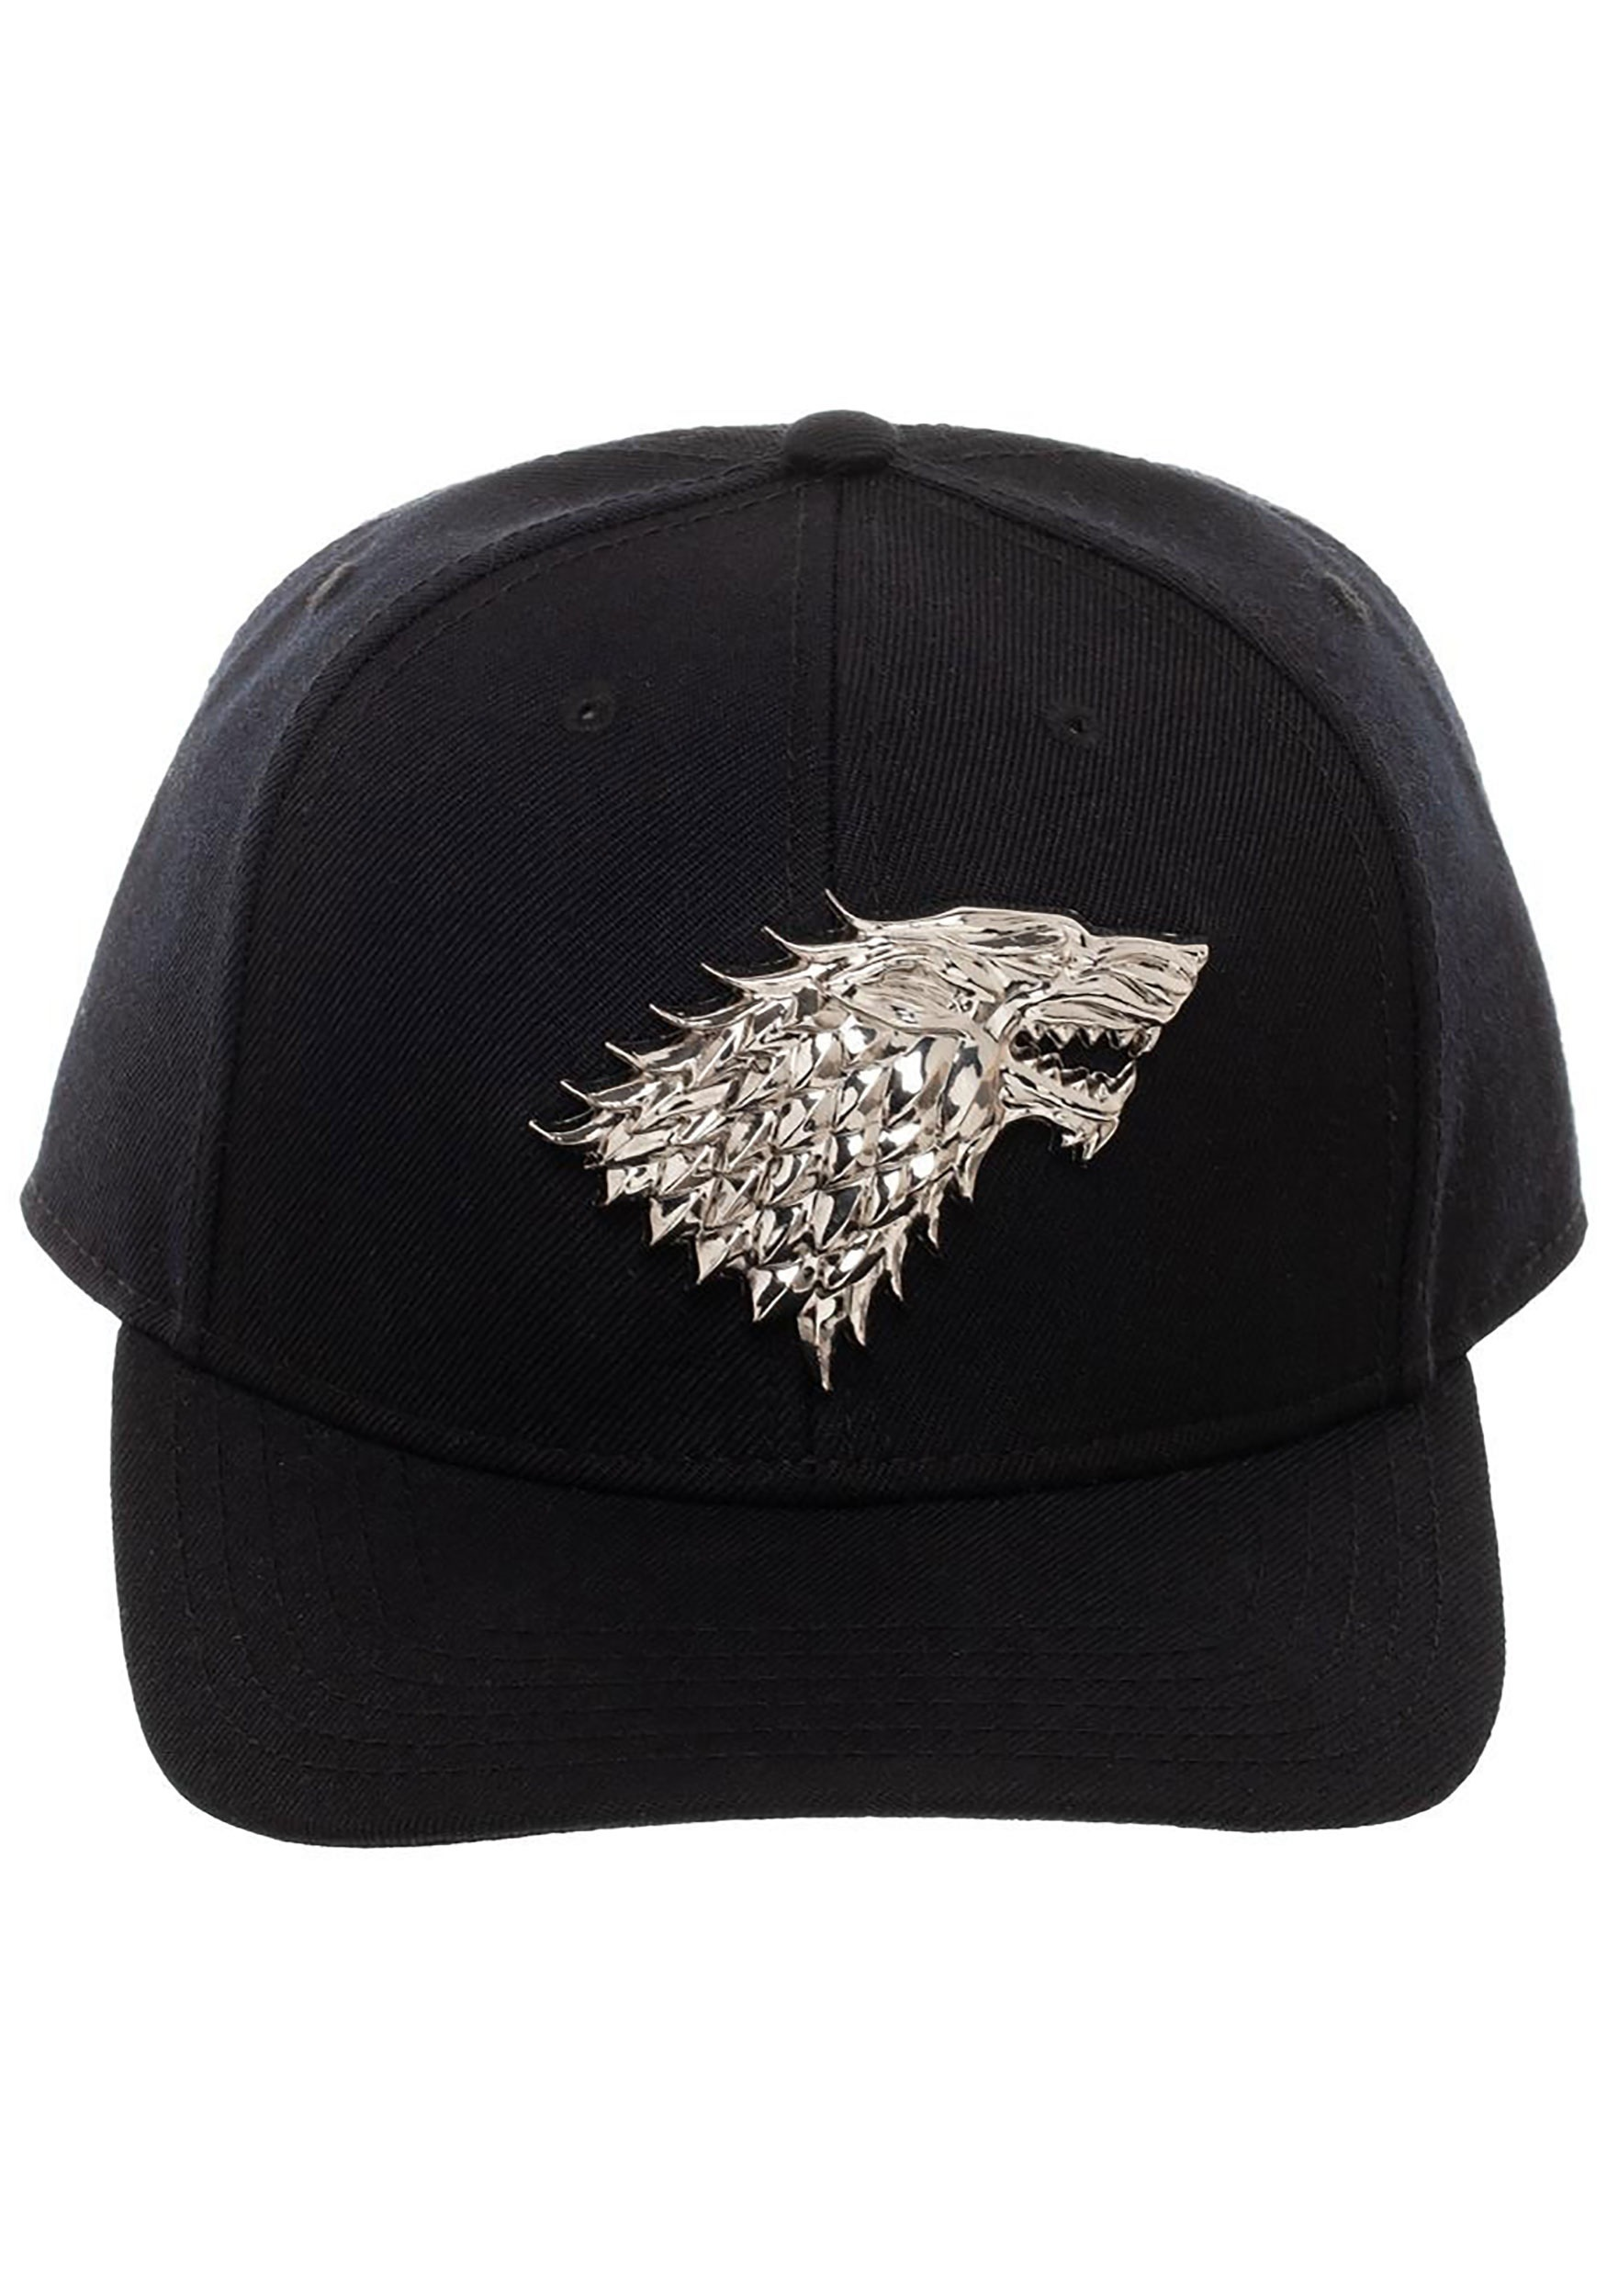 House Stark Game of Thrones Snapback with 3D Metal Sigil 8cf1ee1d0bf